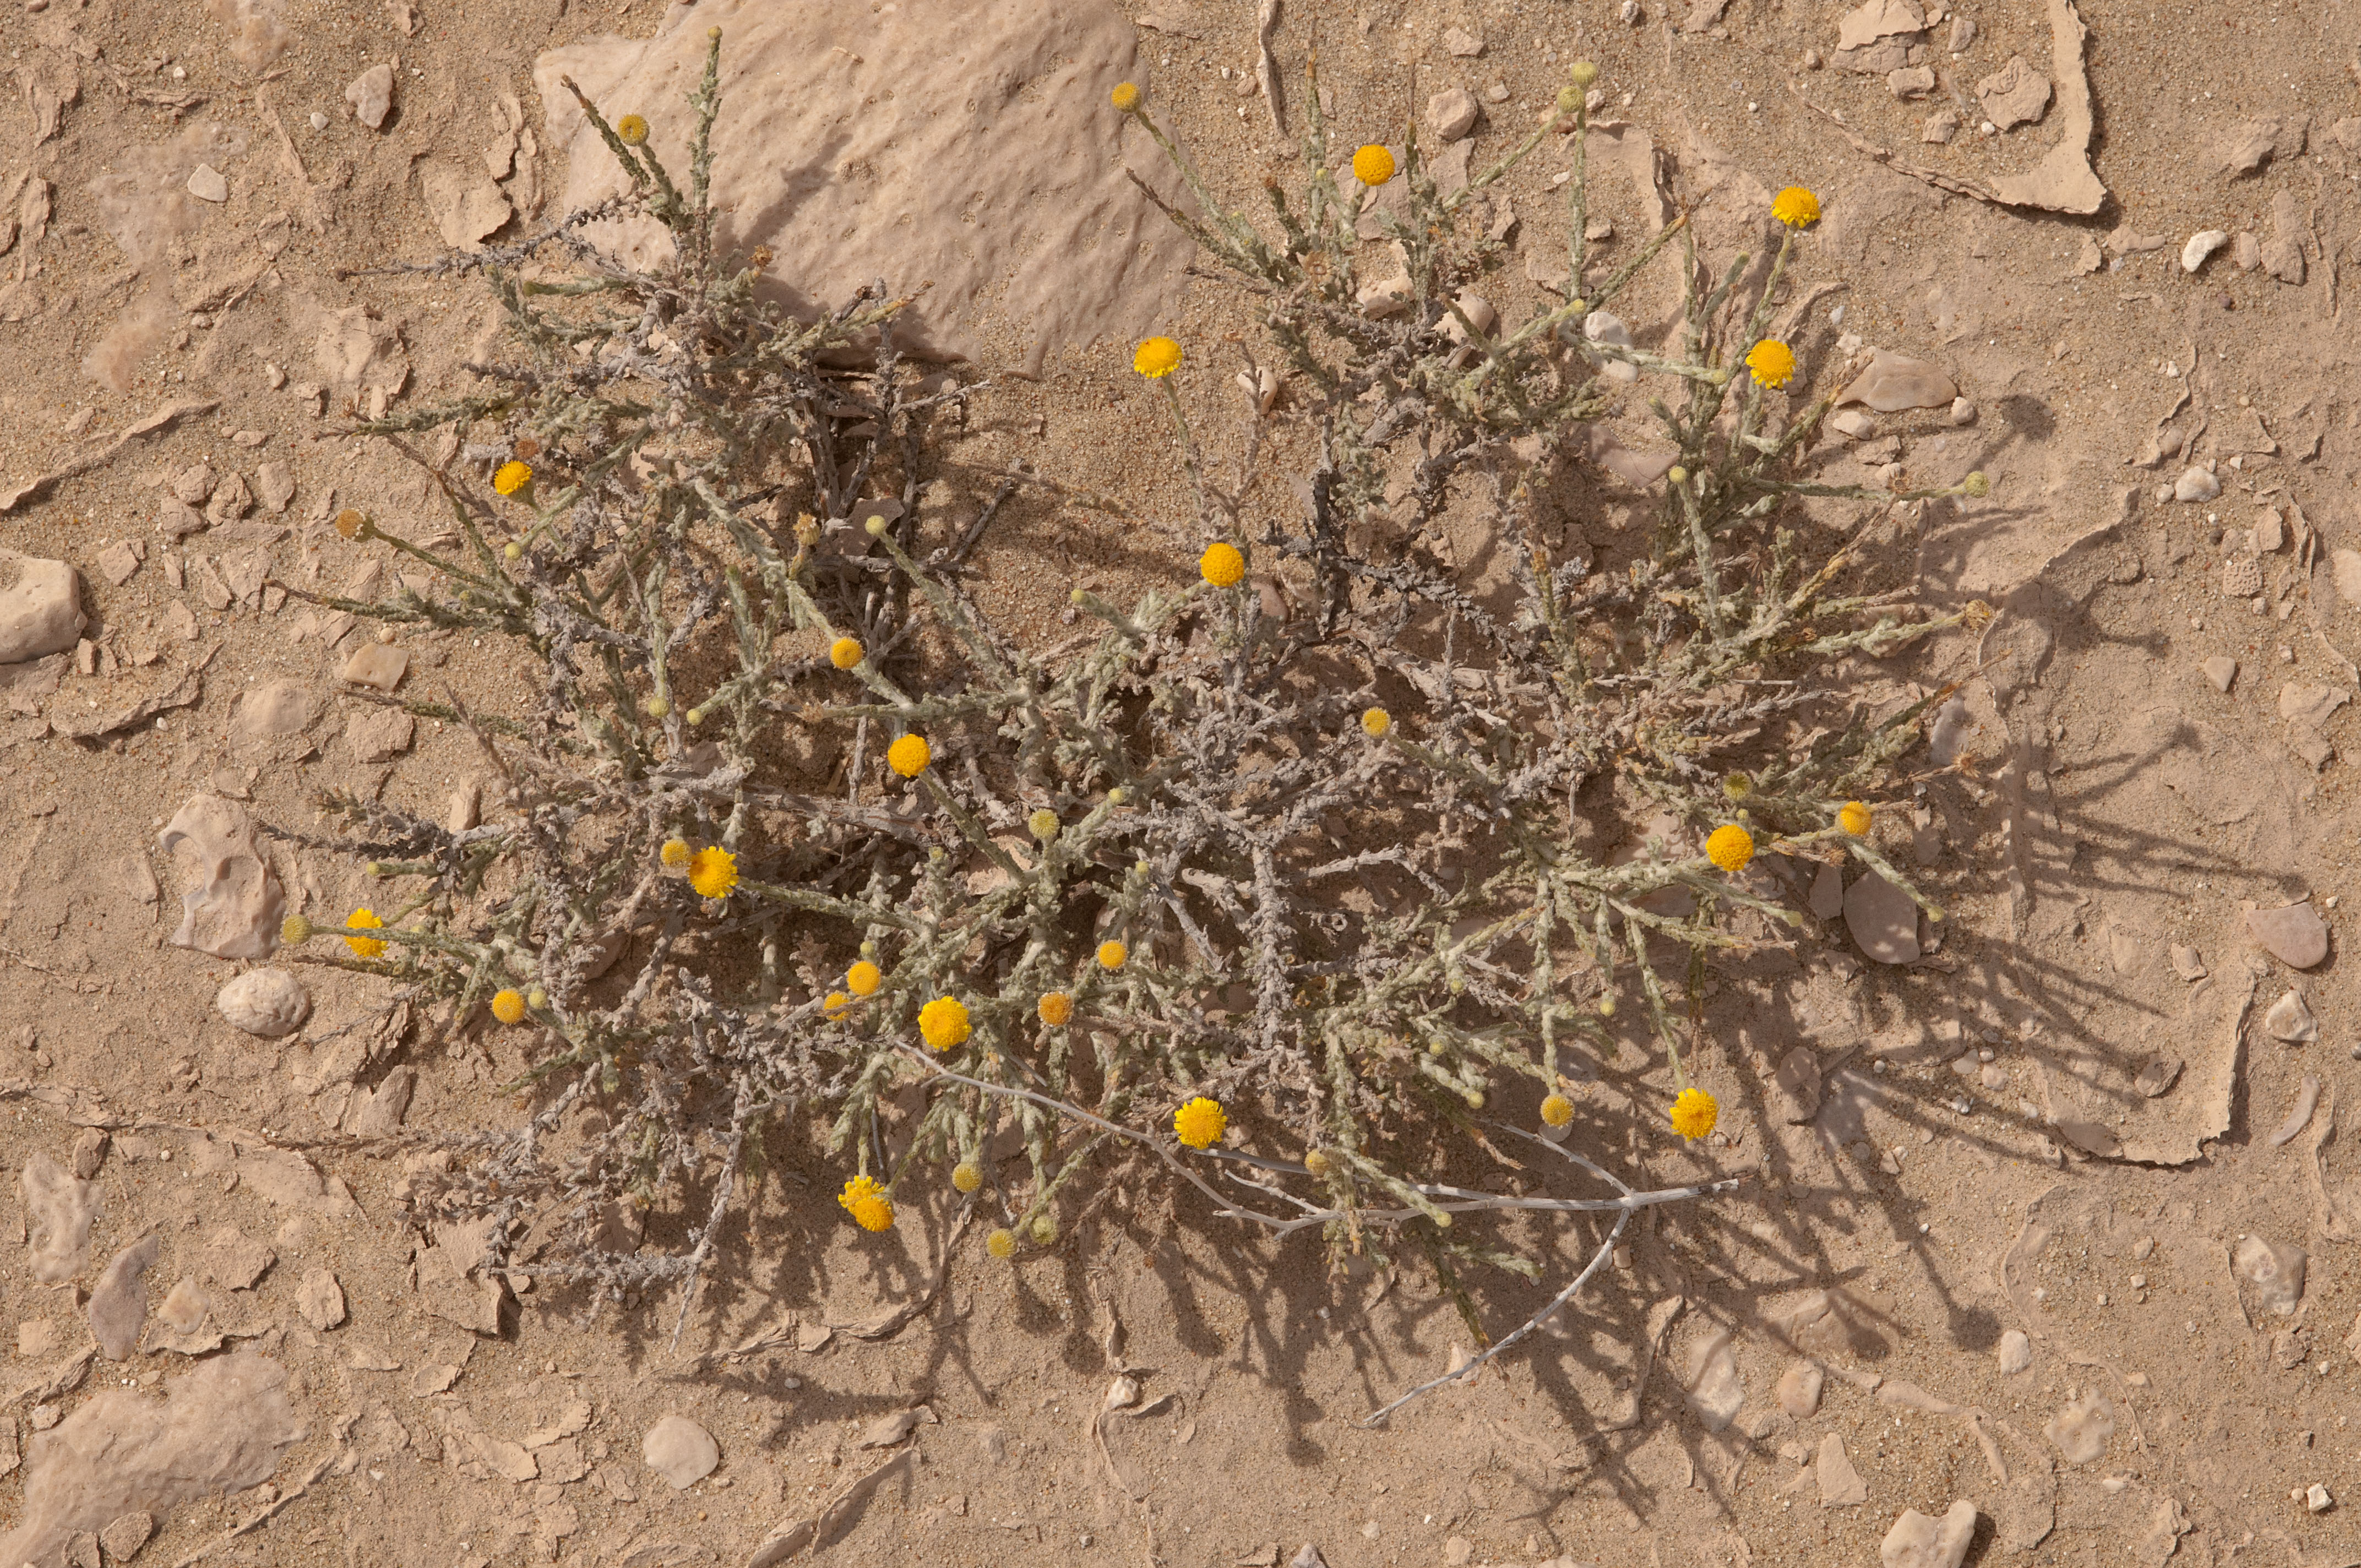 Photo 1176 25 Desert Plant Of Aster Family With Yellow Flowers